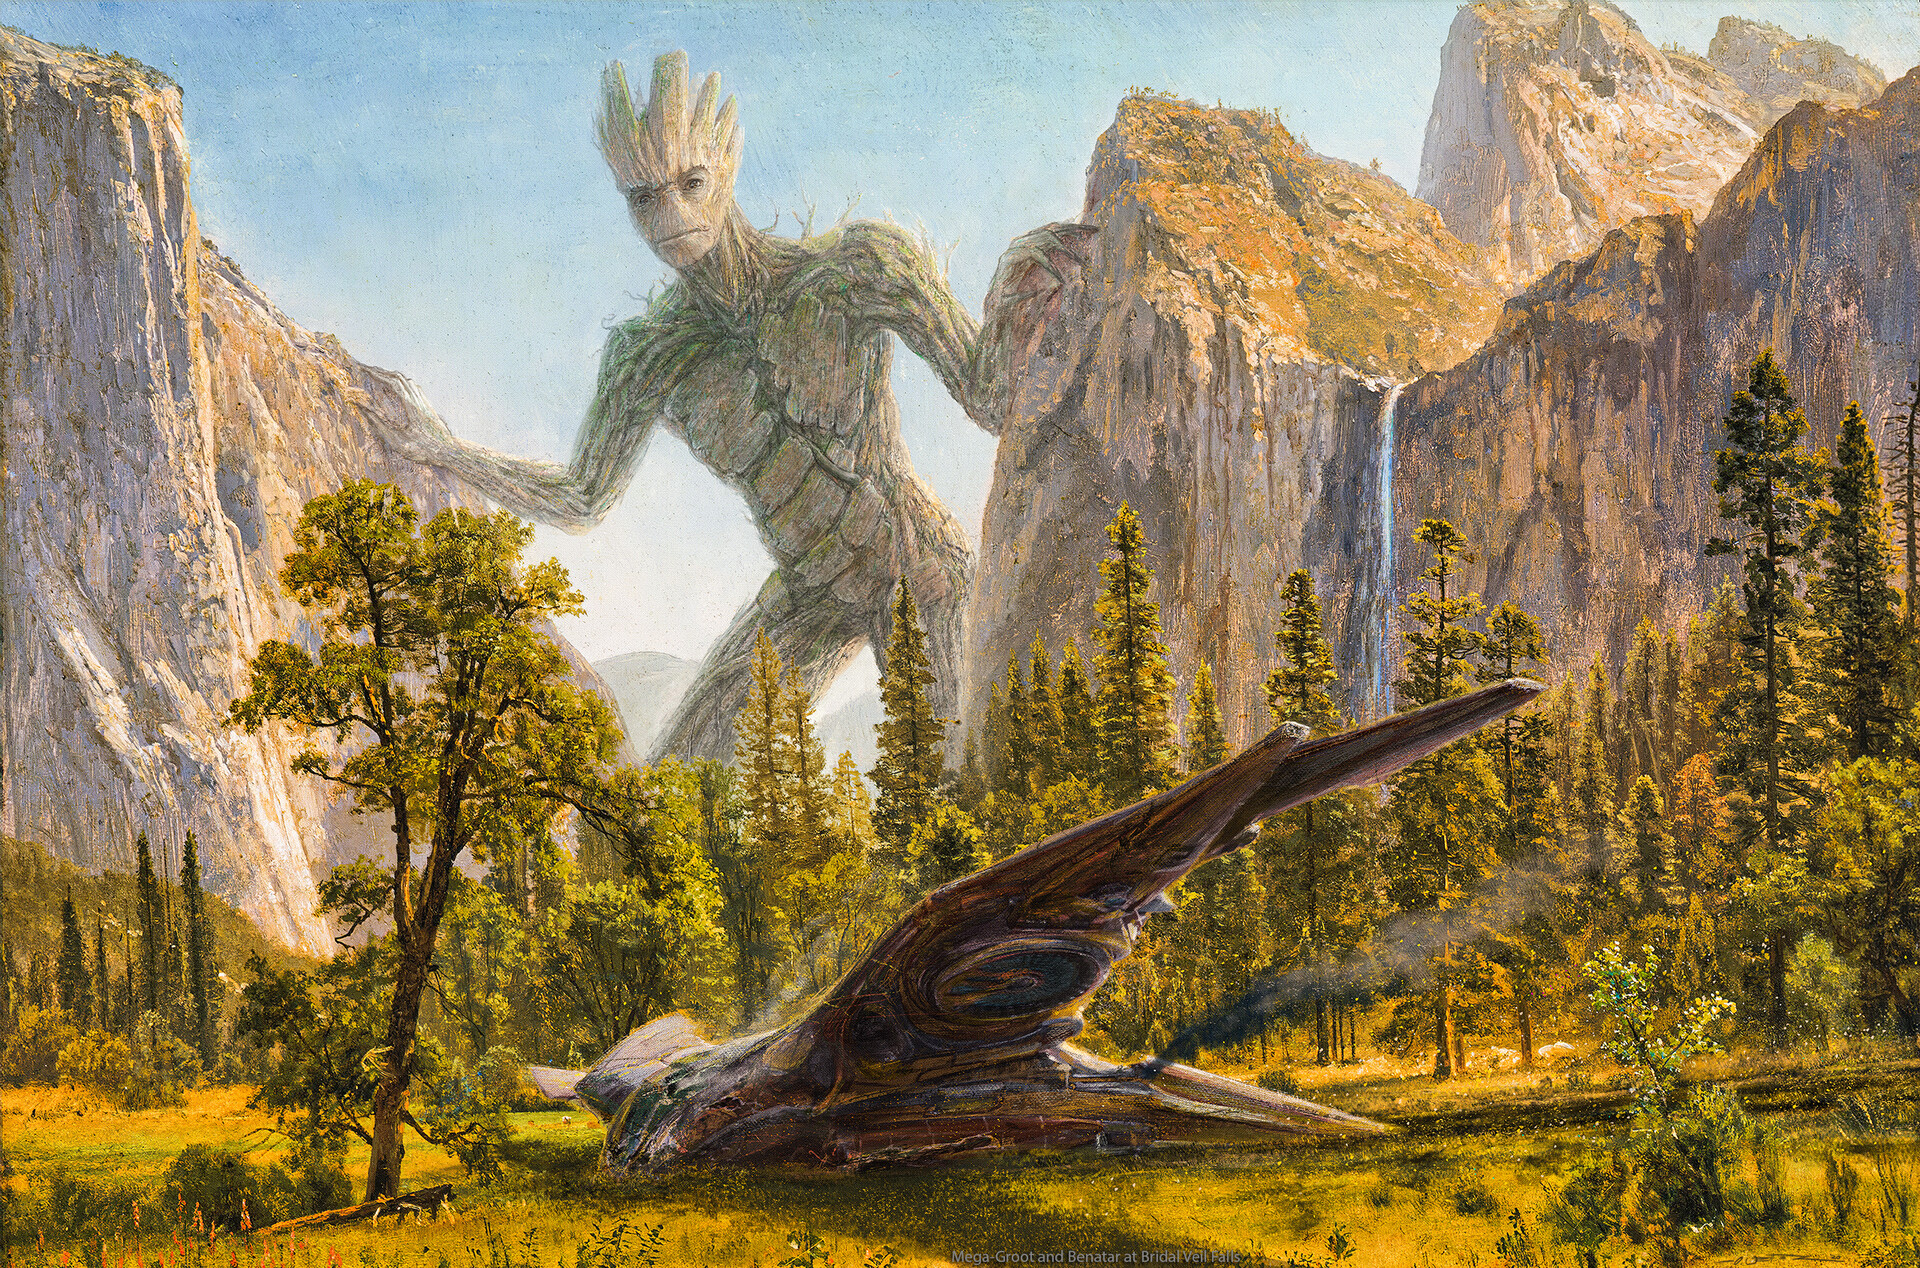 Mega Groot & Benatar at Bridal Veil Falls after Bierstadt